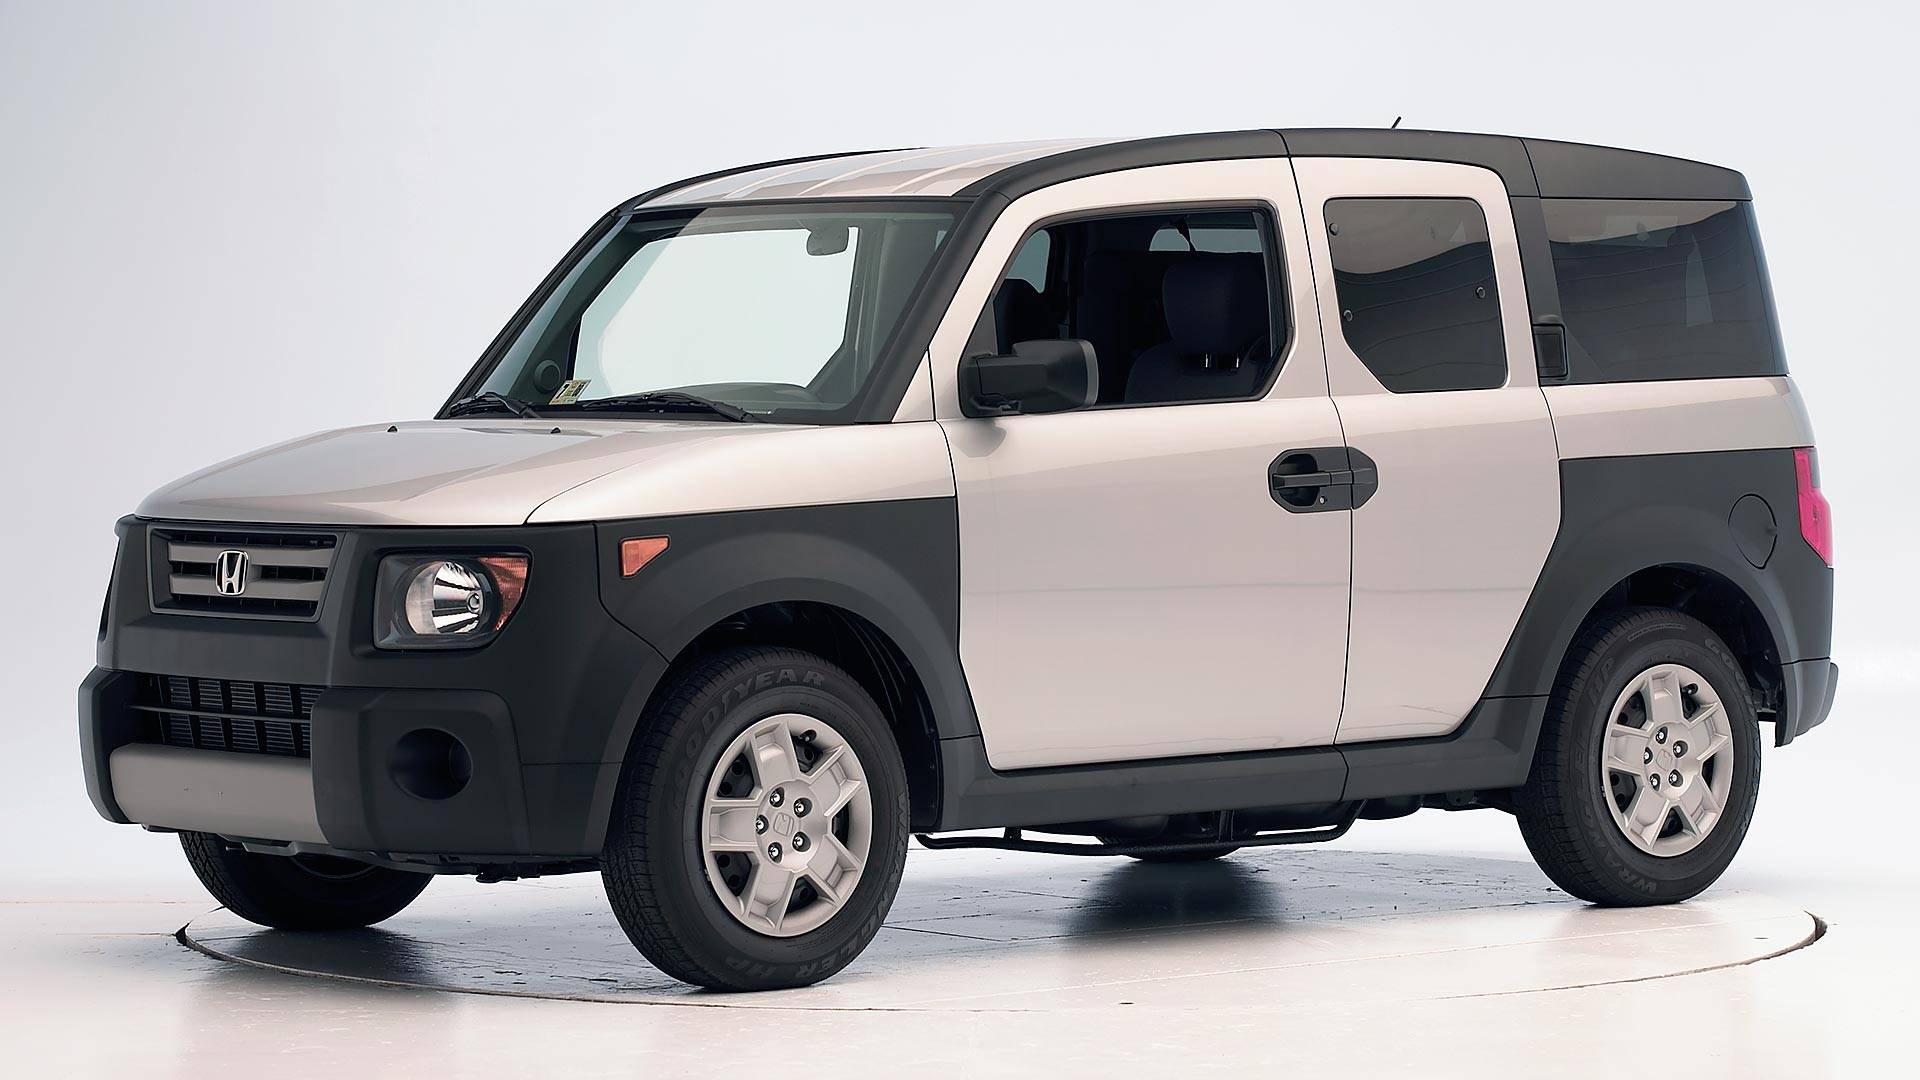 2009 Honda Element 4-door SUV